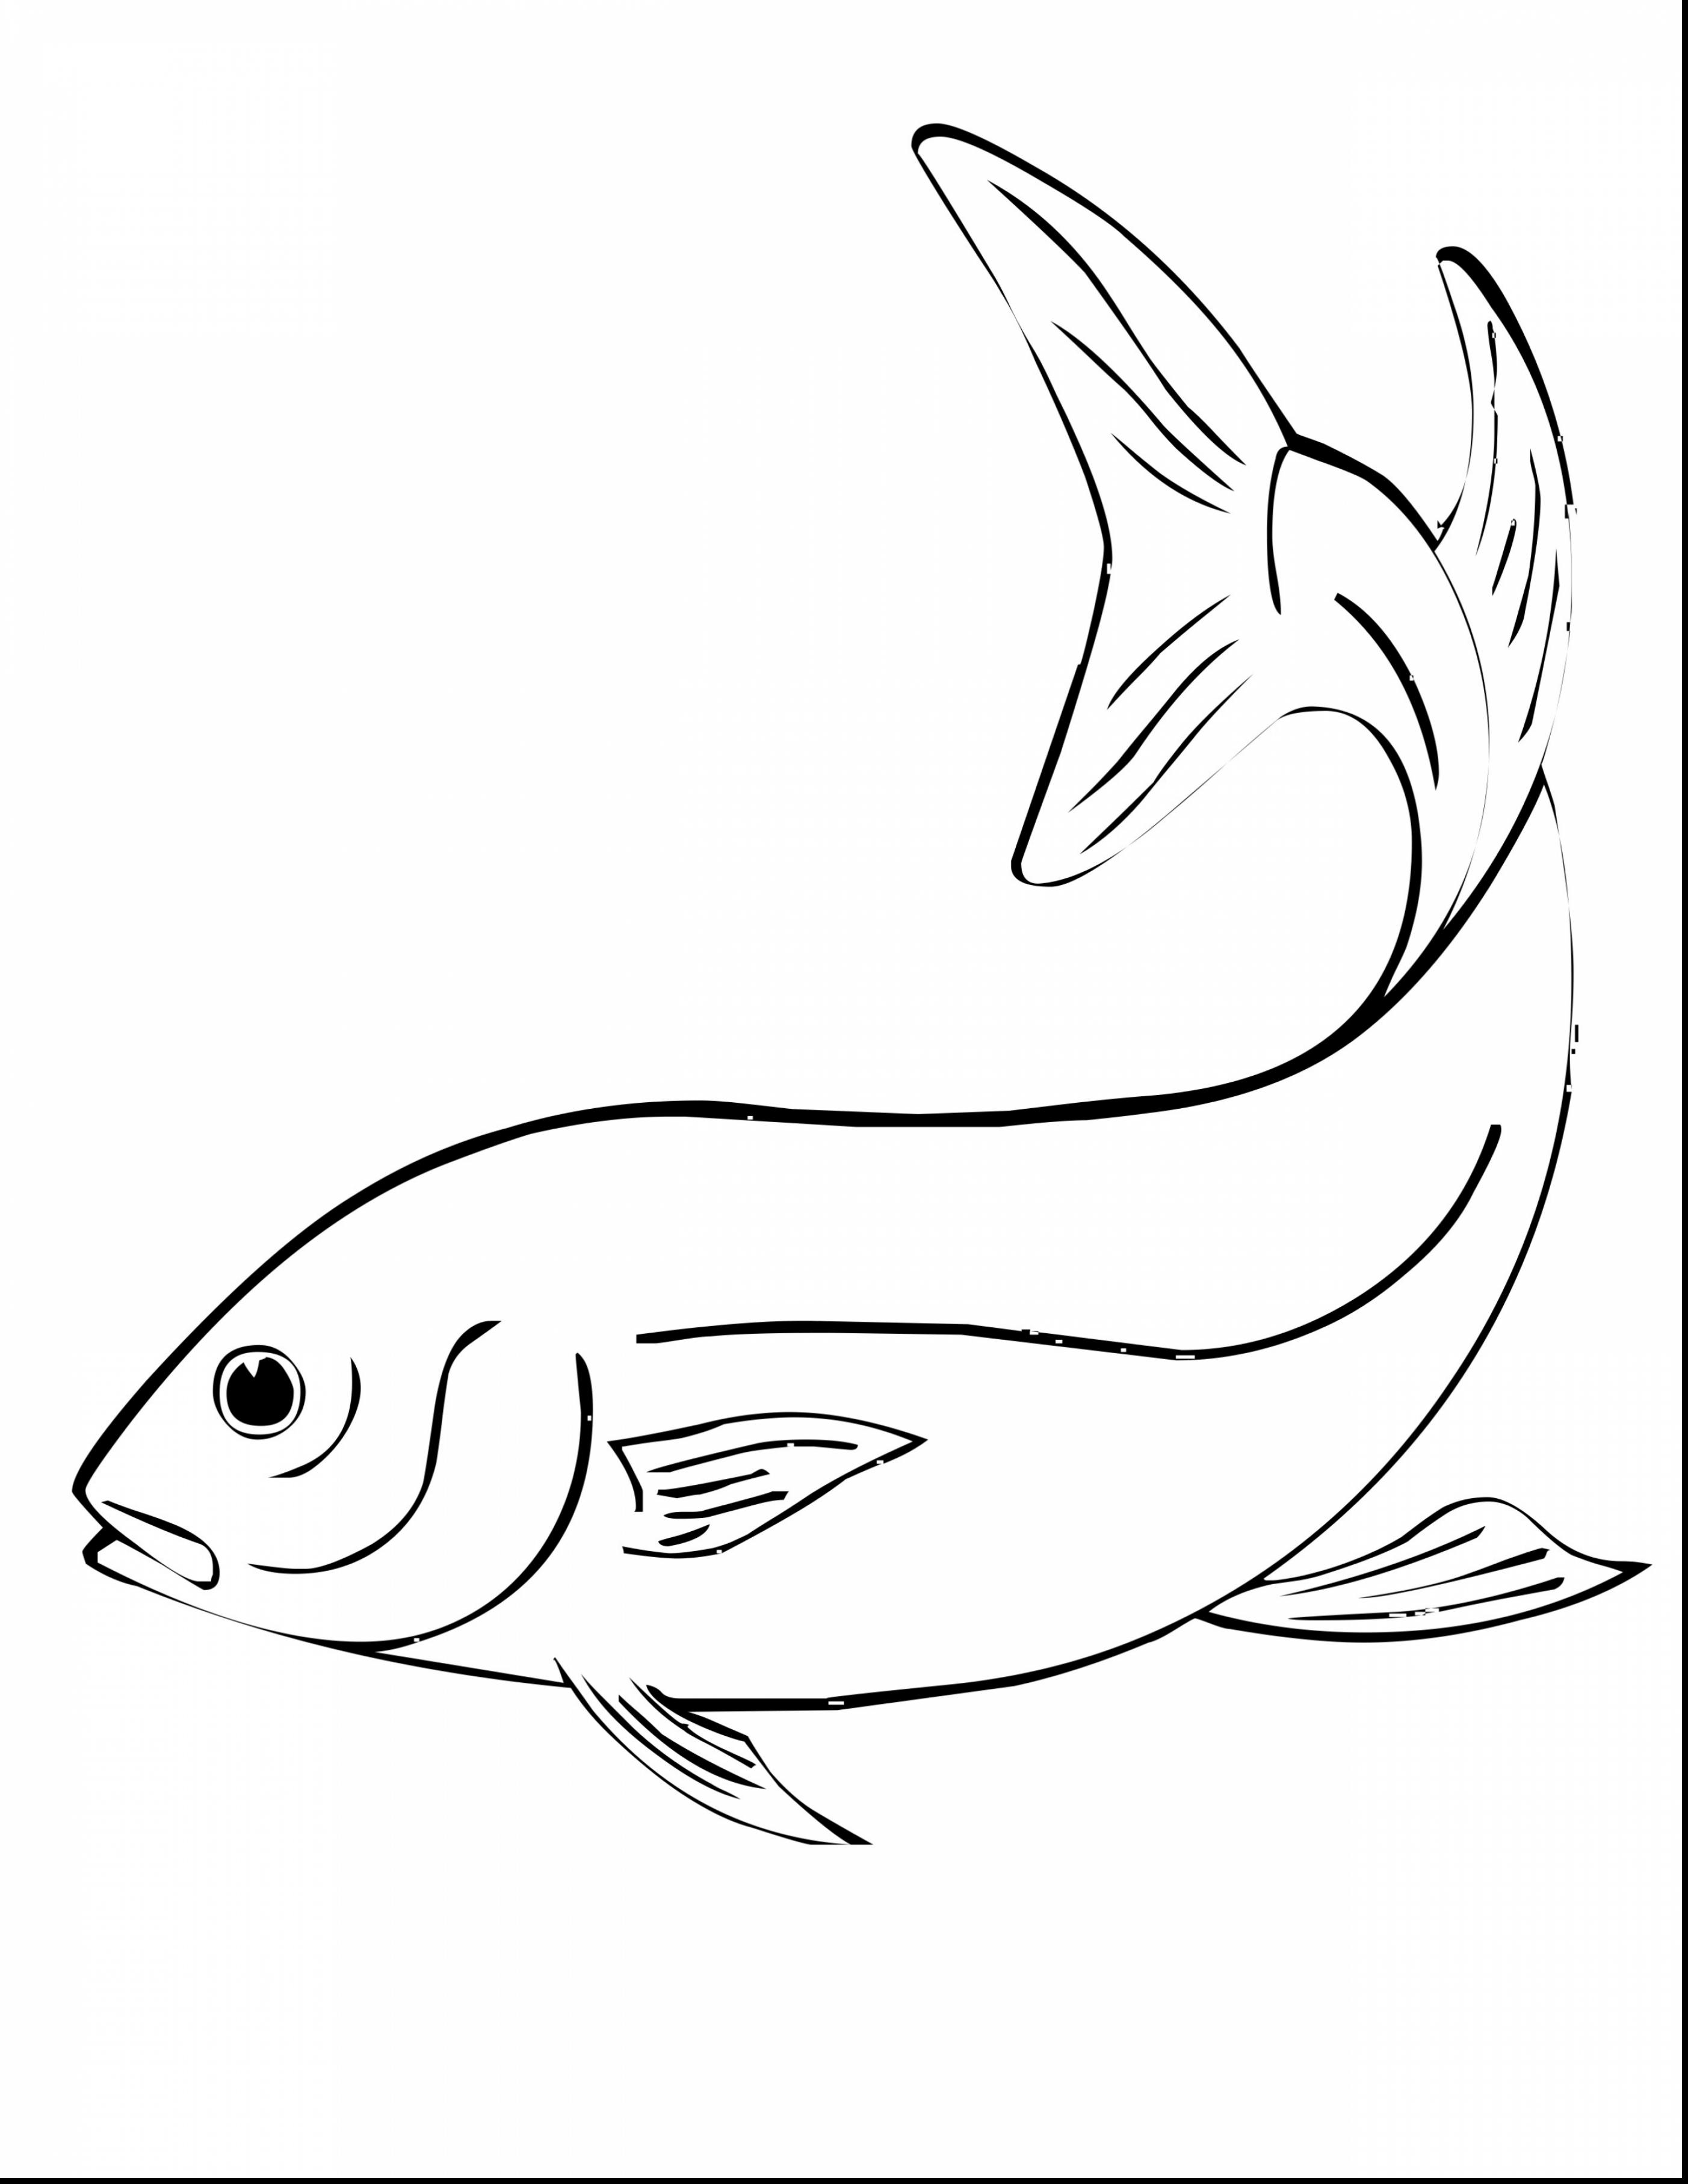 Bass Fish Drawing at GetDrawings.com | Free for personal use Bass ...